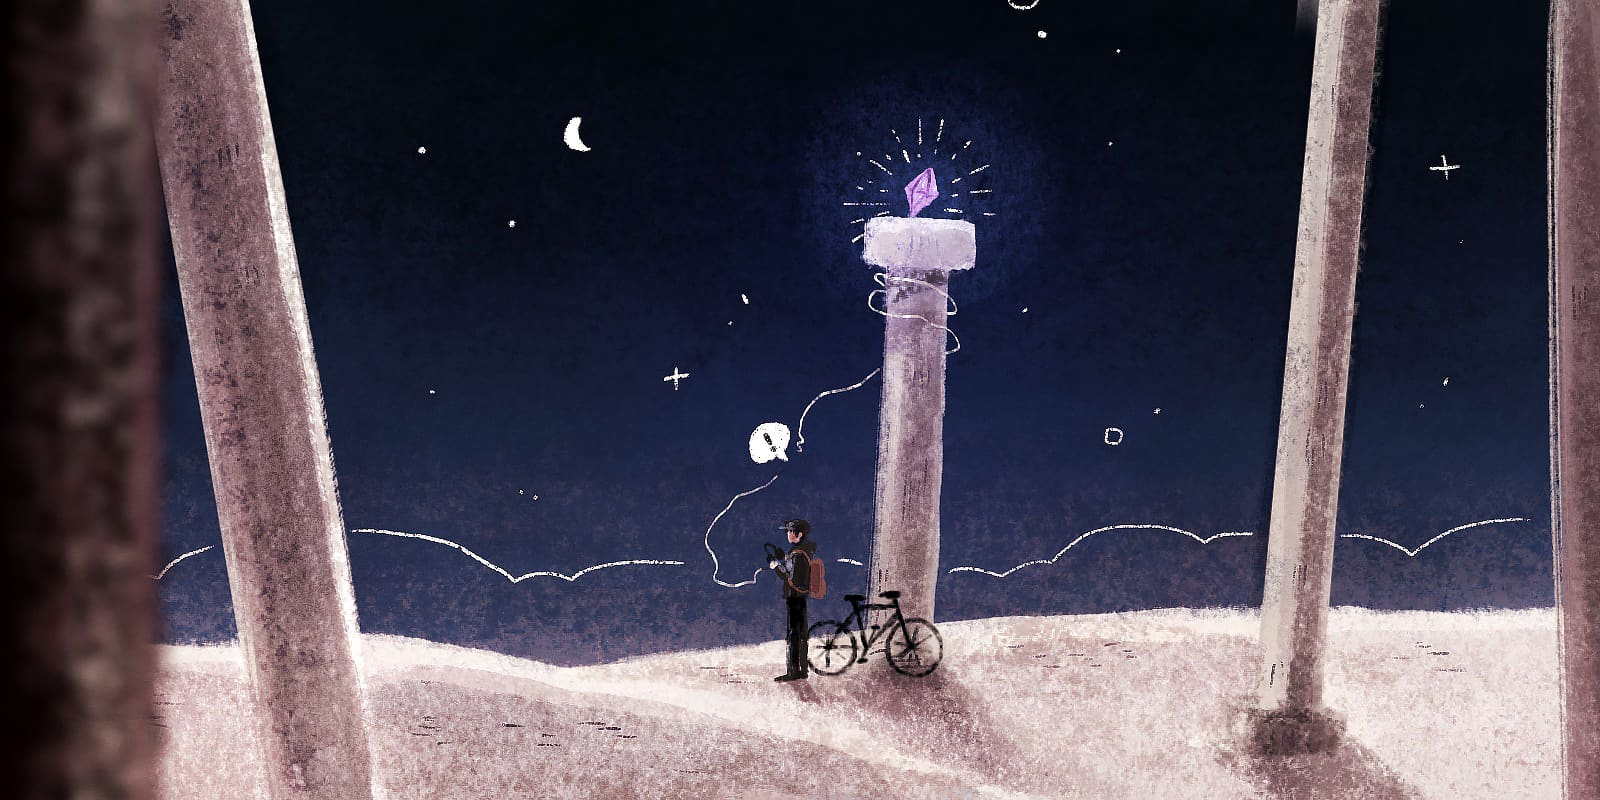 A person in a baseball cap stands next to their bike, looking out at the night sky while holding a pair of broken headphones